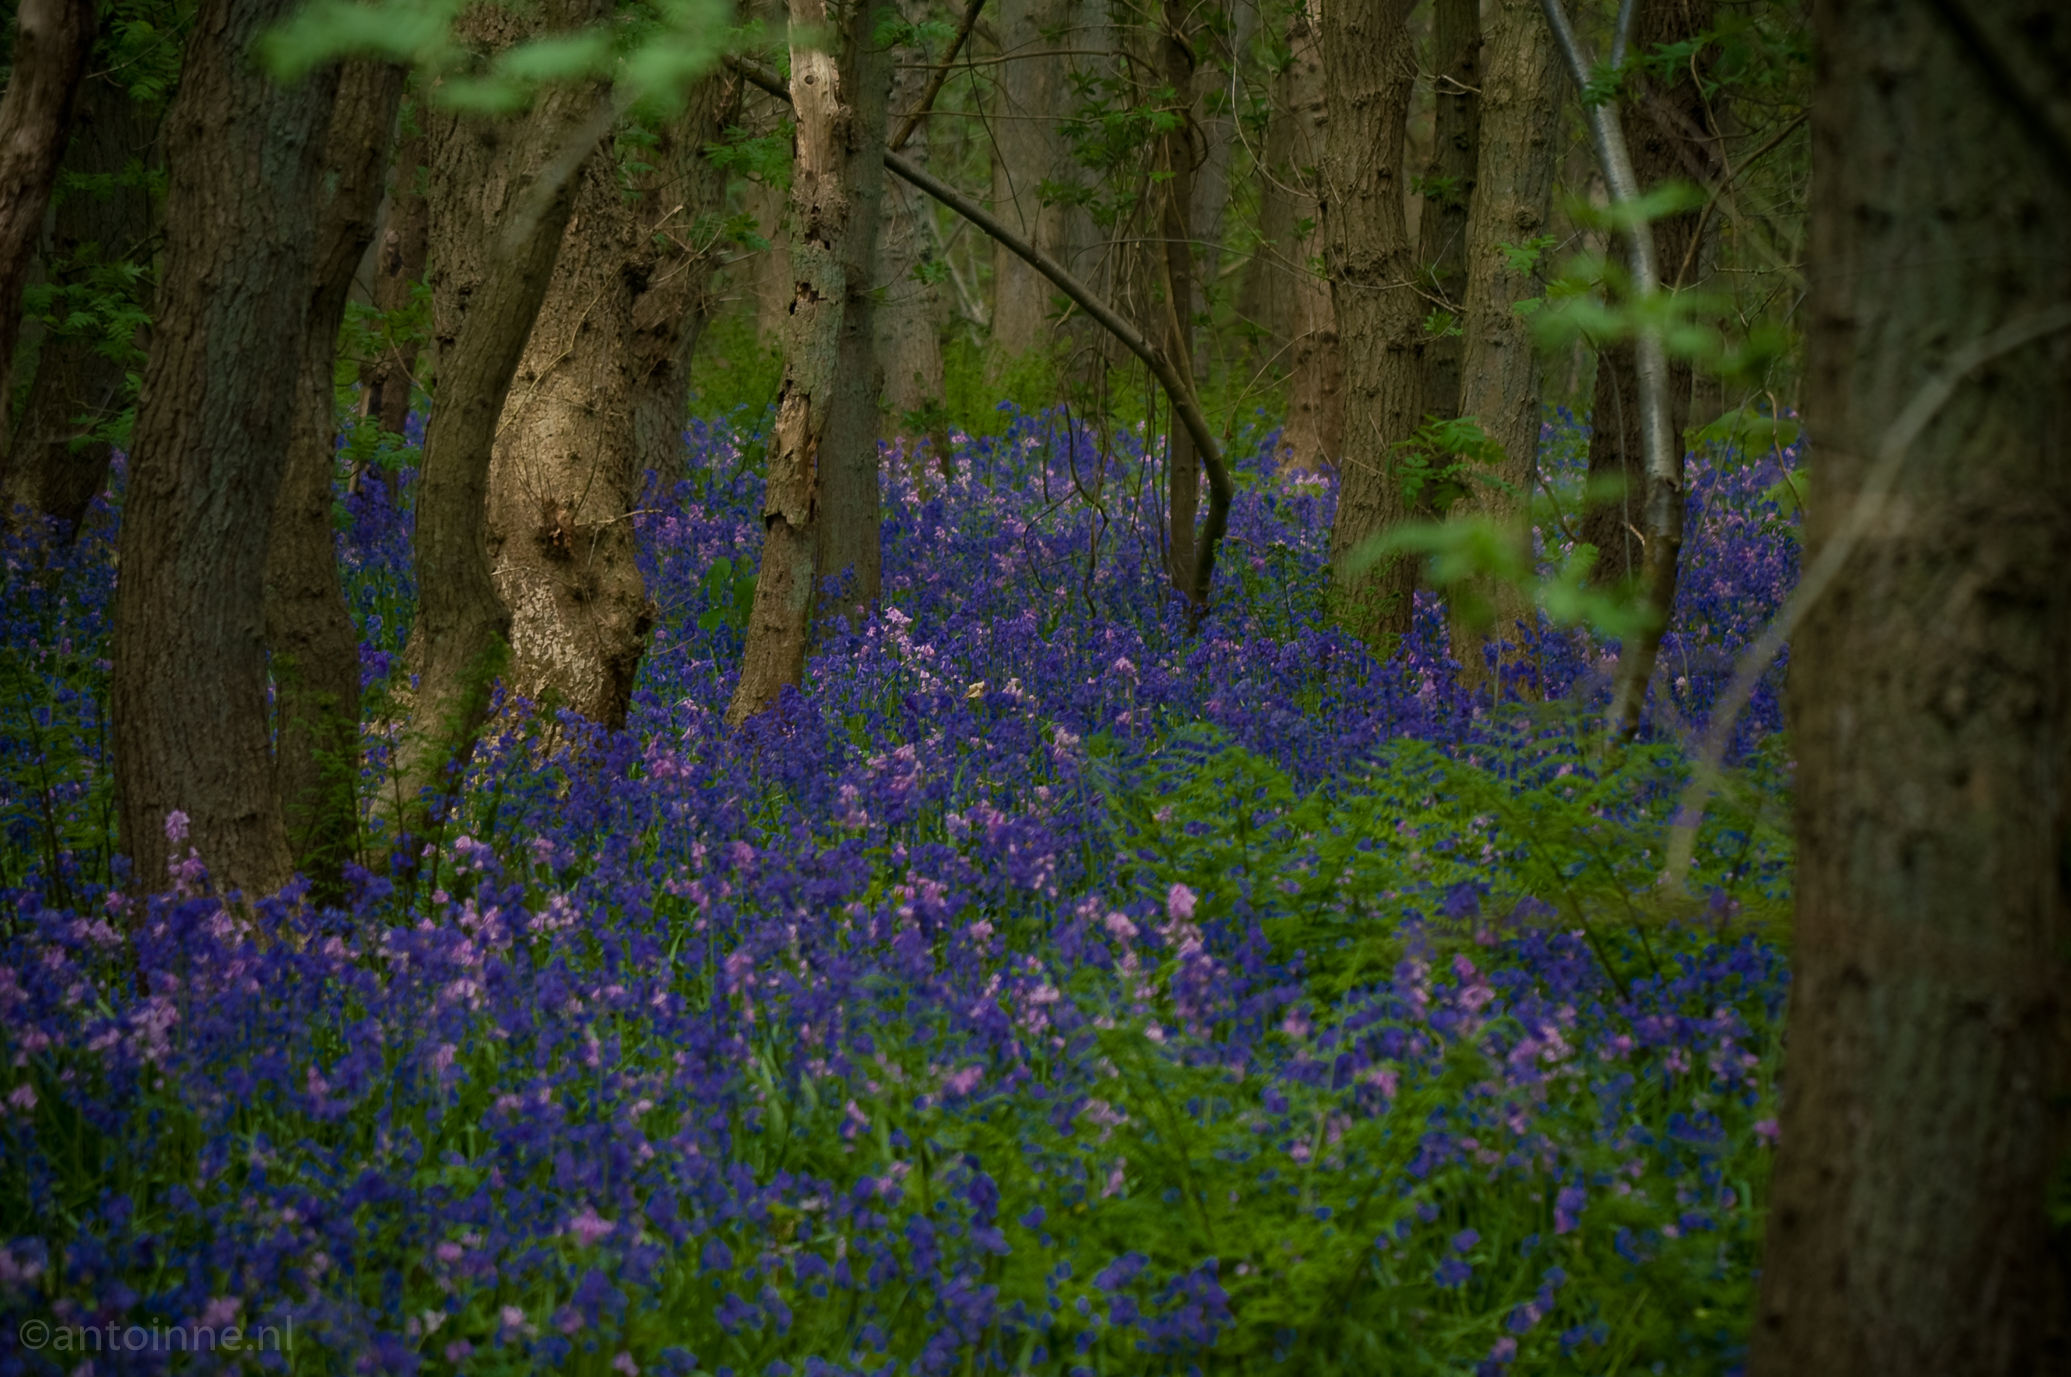 Bluebells and trees (Wildrijk, mei 2008)